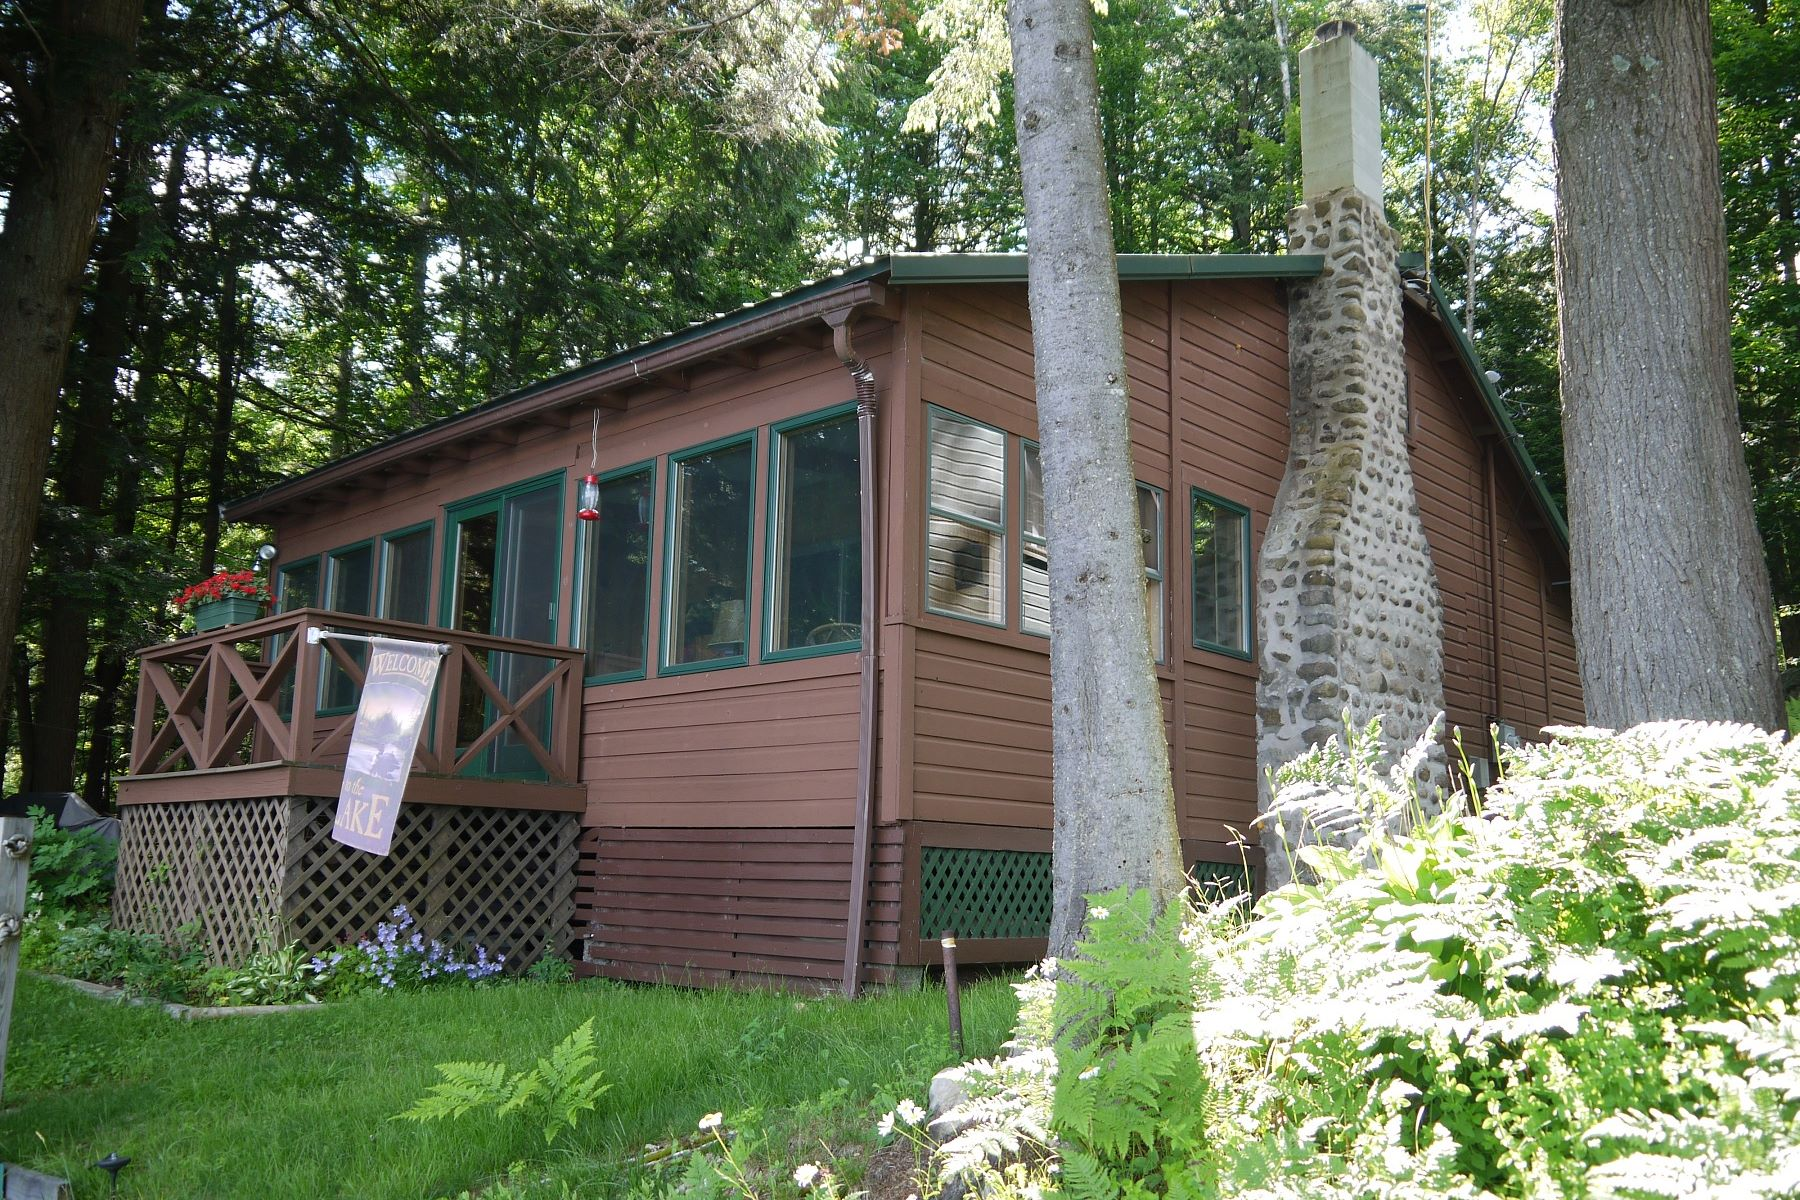 Single Family Home for Sale at Rustic seasonal camp with 60 feet of waterfront on serene Otter Lake 4251 Lakeview Rd Forestport, New York 13494 United States